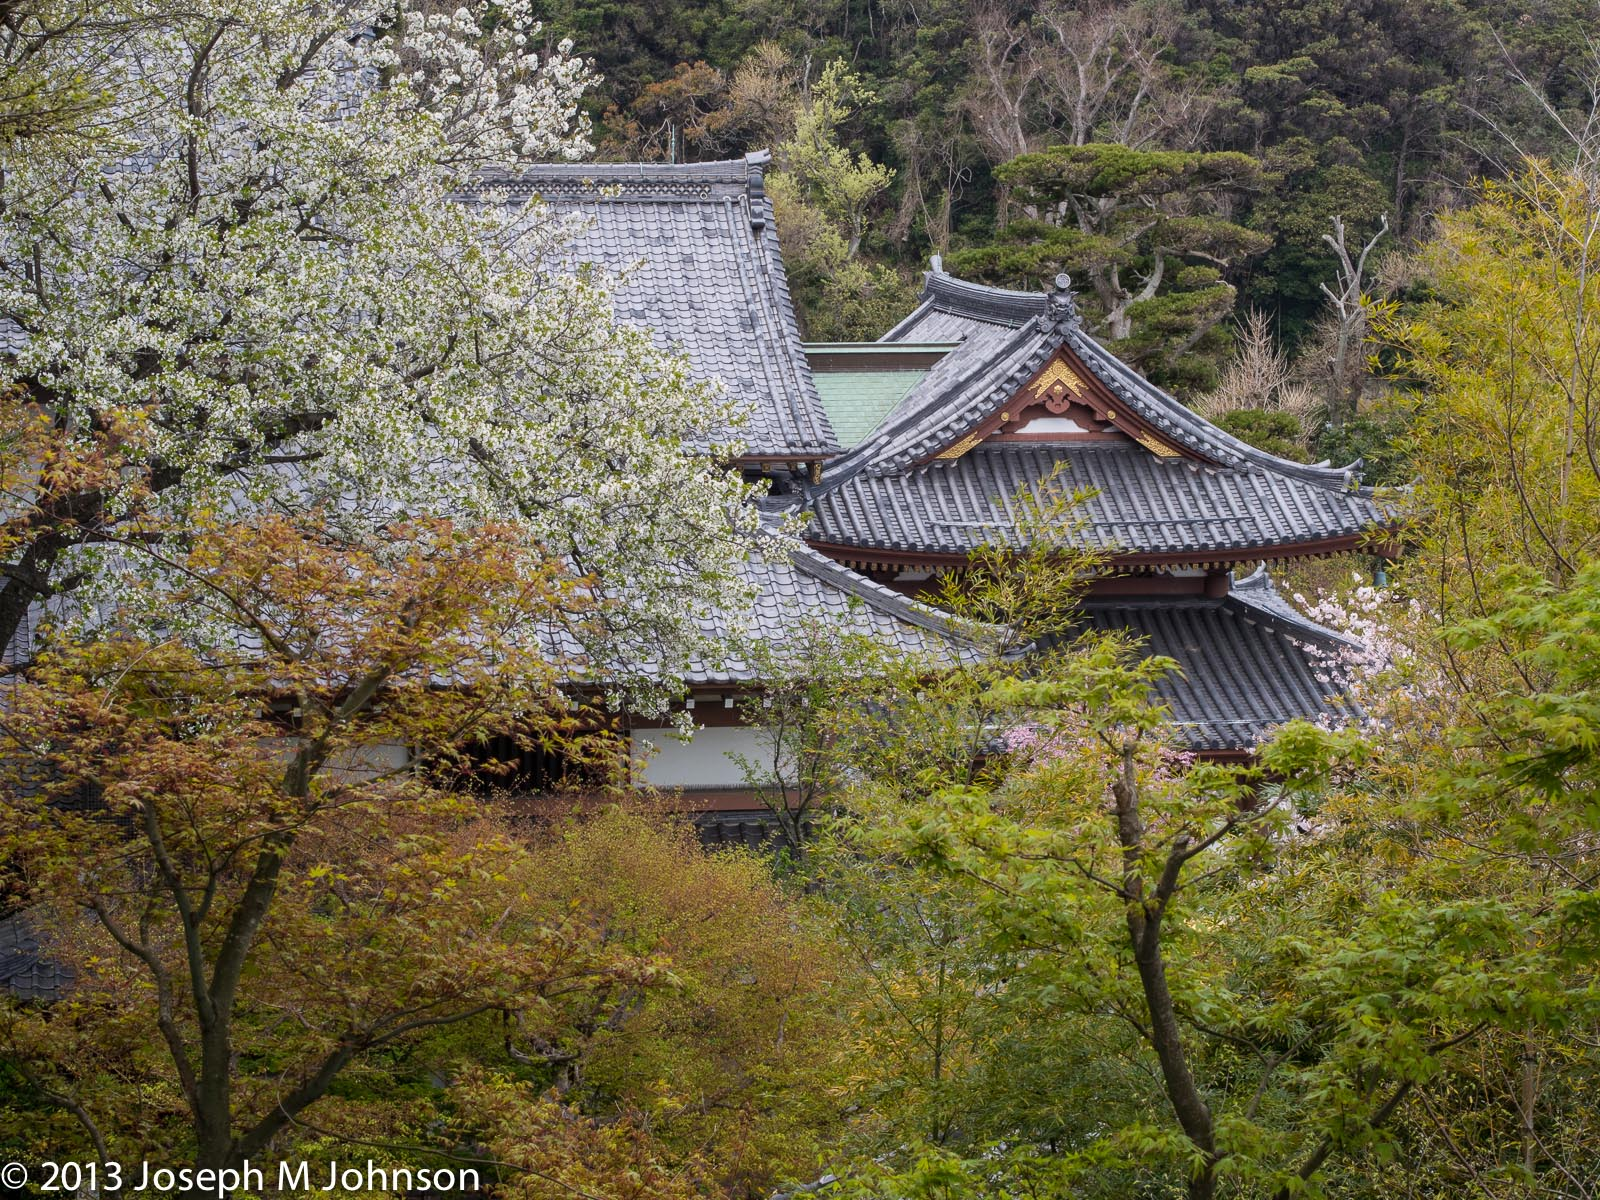 Sakura blooms against the temple roofline